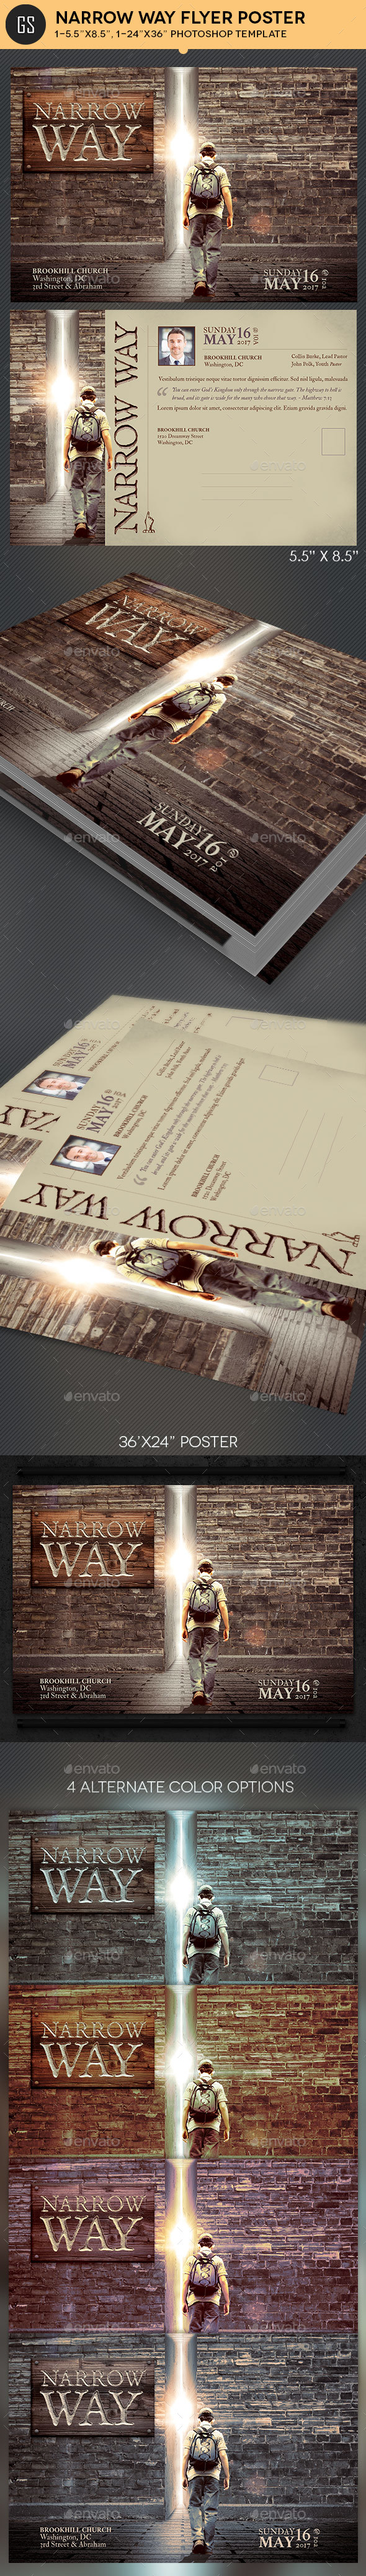 Narrow Way Flyer Poster Template - Church Flyers